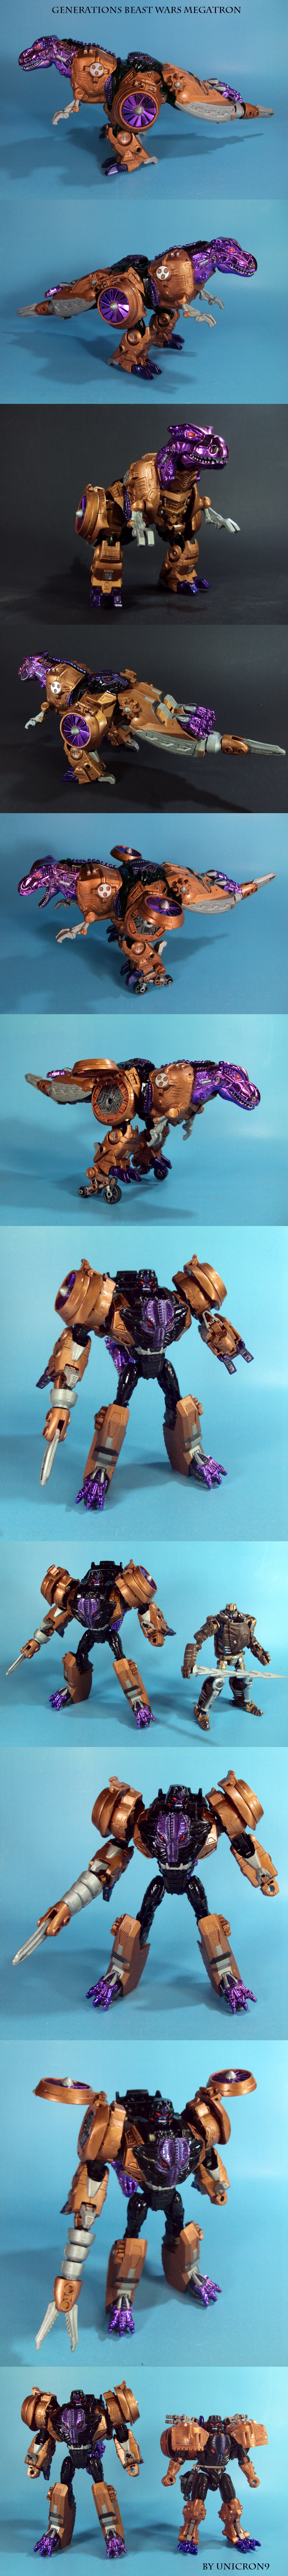 Generations Beast Wars Megatron by Unicron9